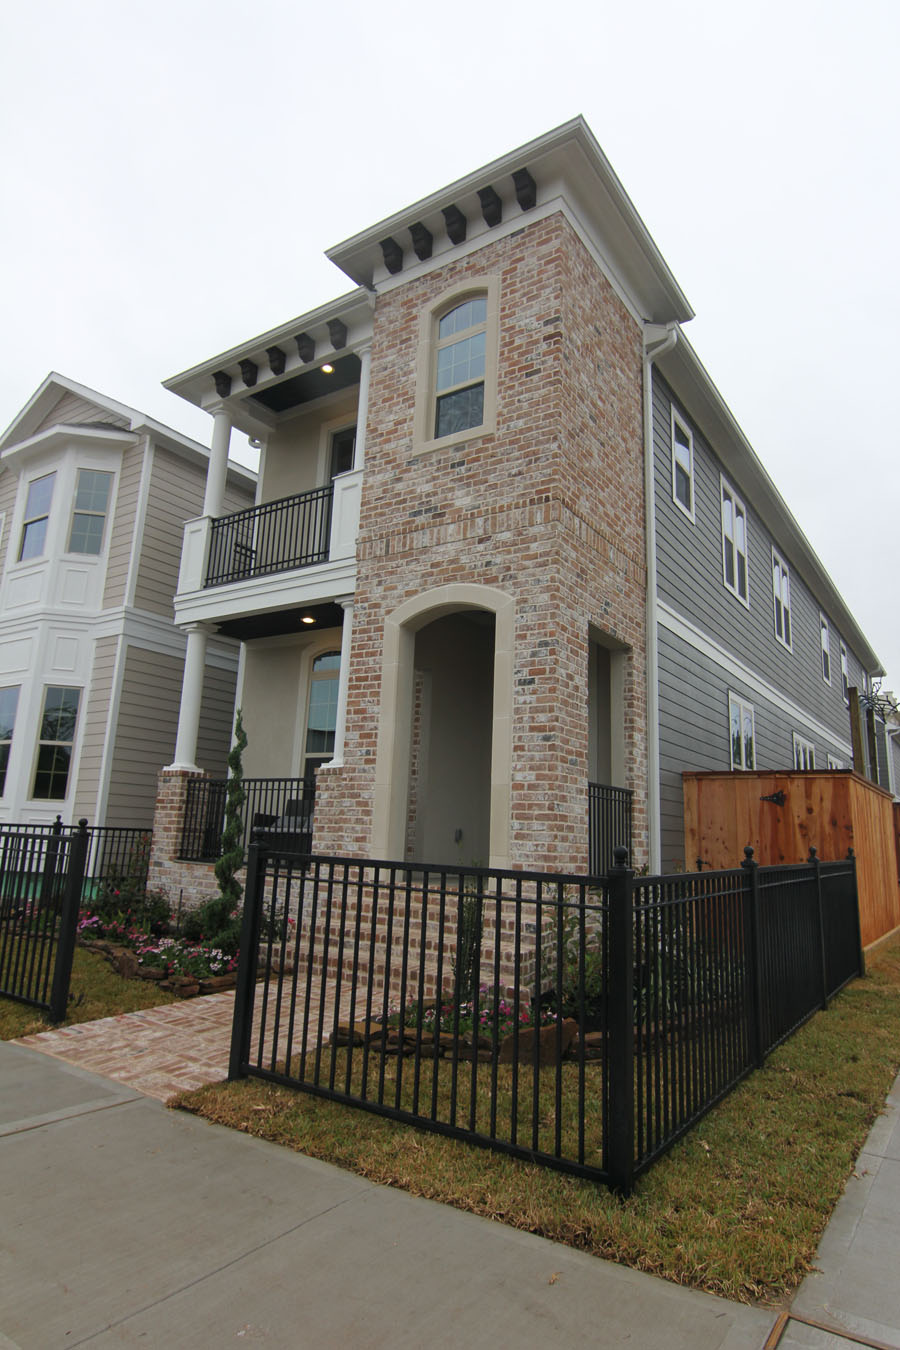 Ashland Square New Exterior Photo Drake Homes Inc Blog: drake homes inc